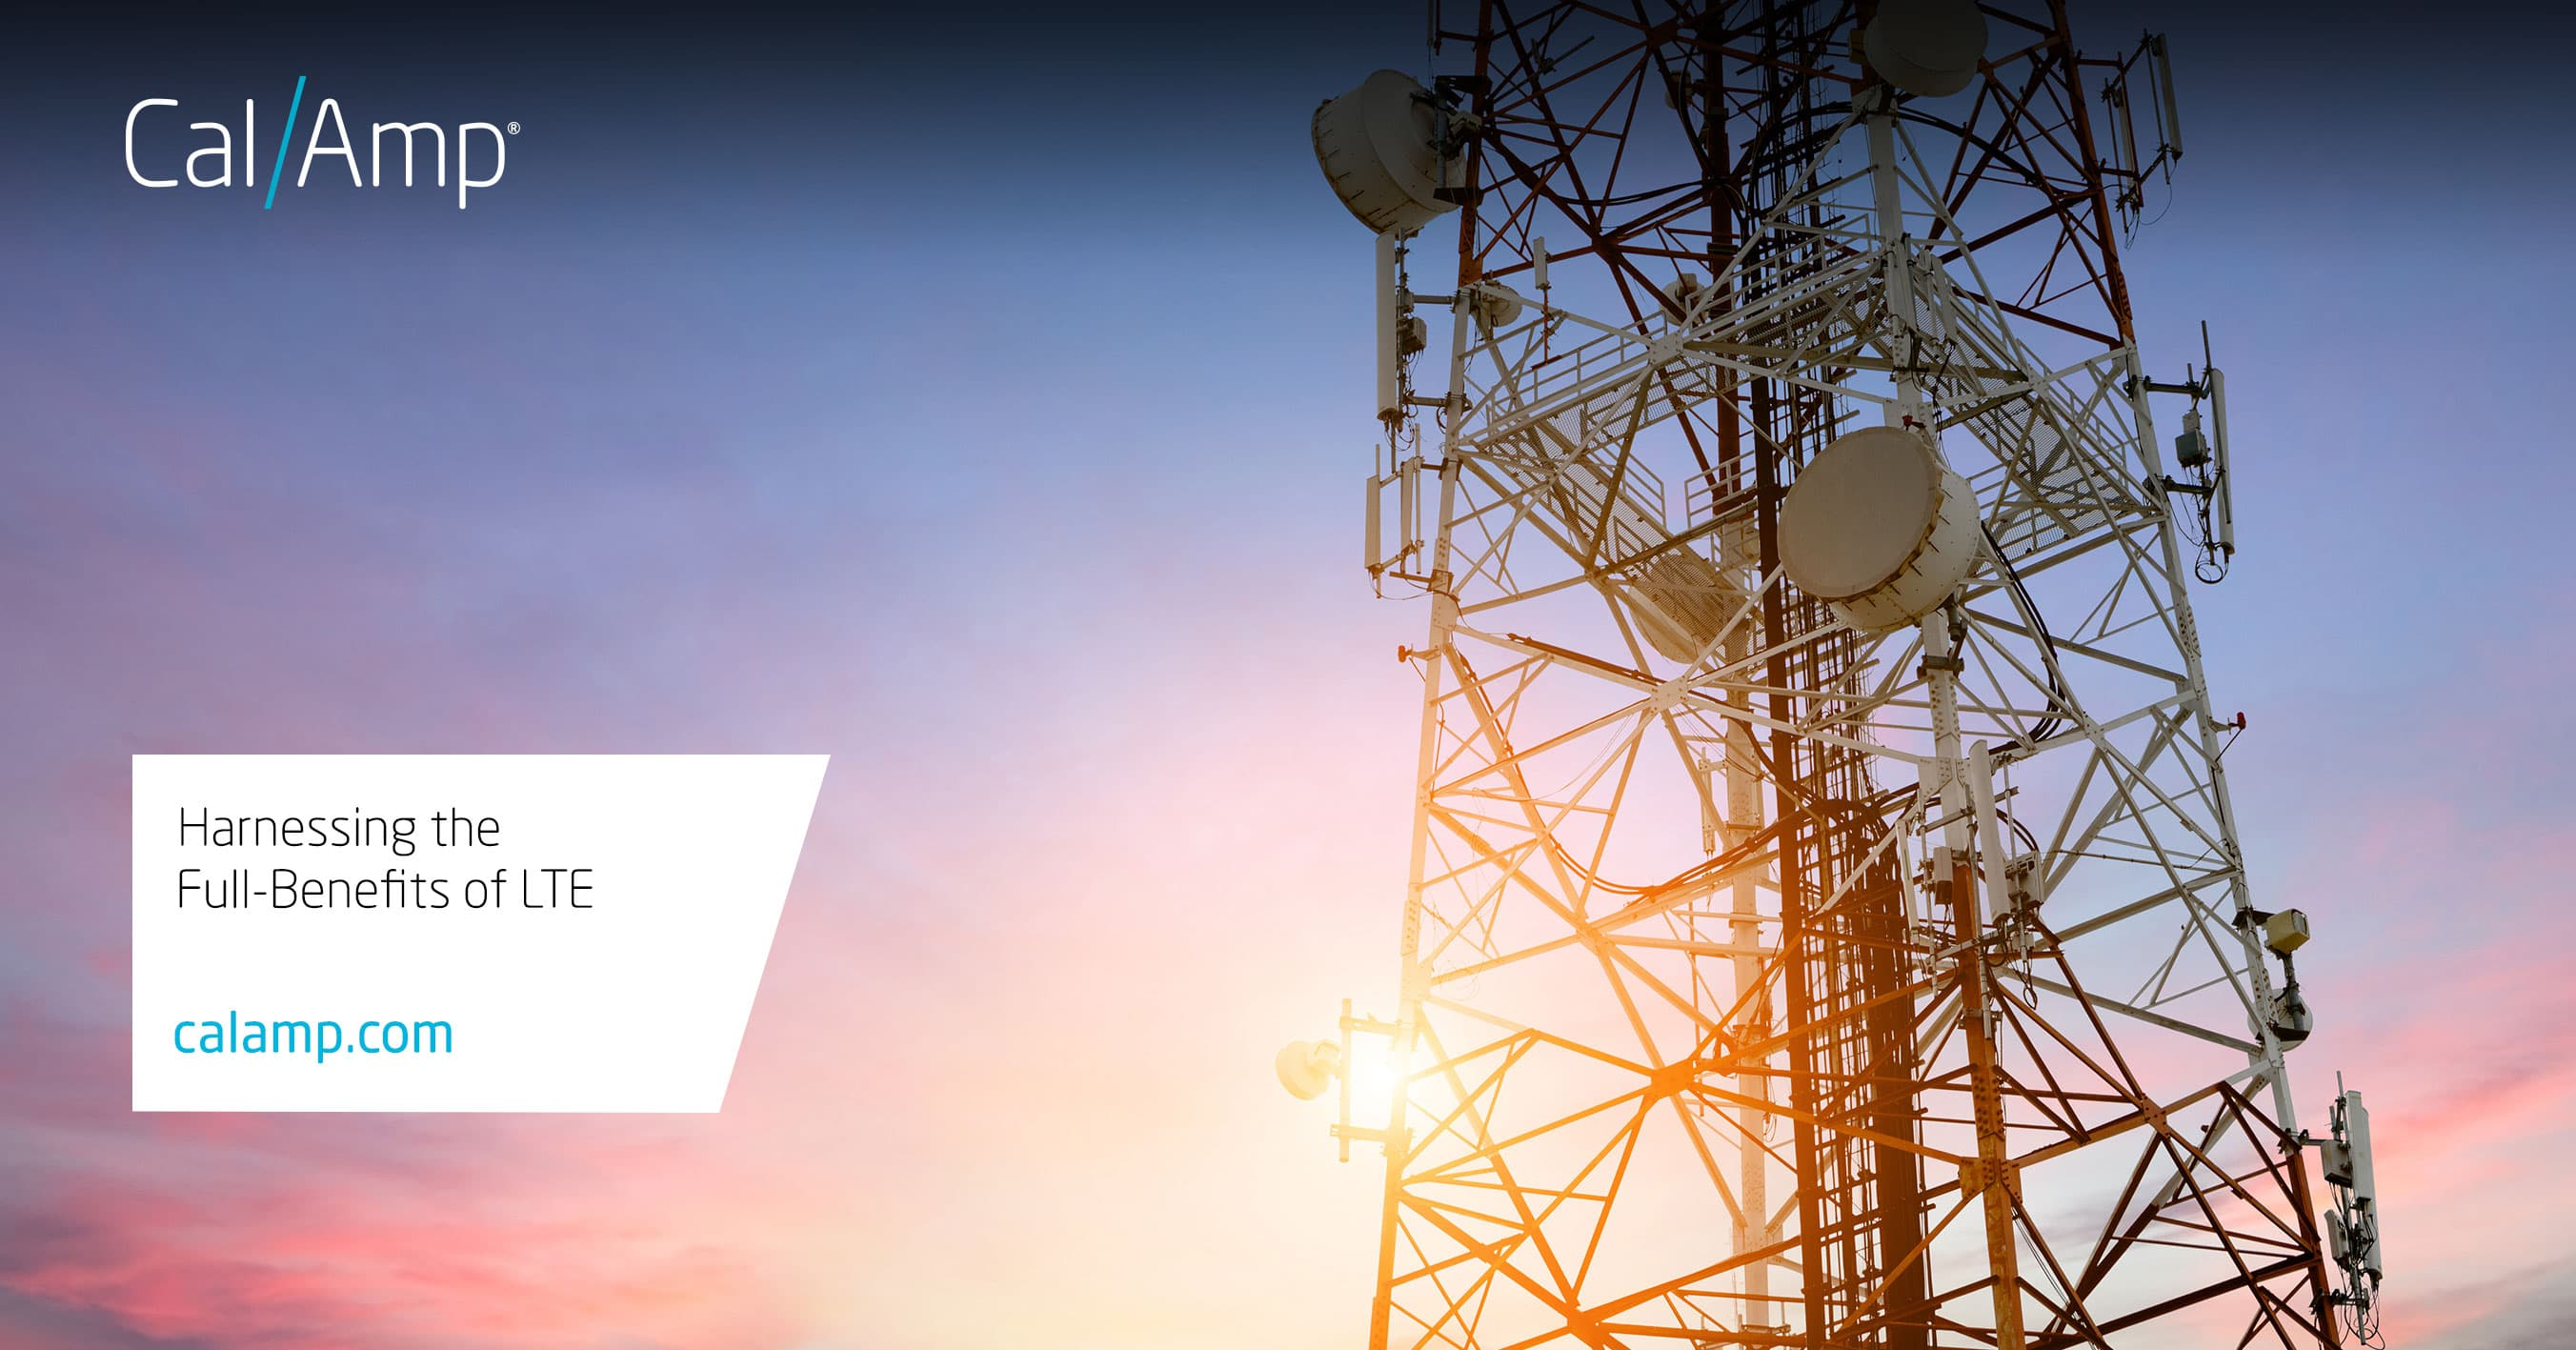 Harnessing the Full-Benefits of LTE